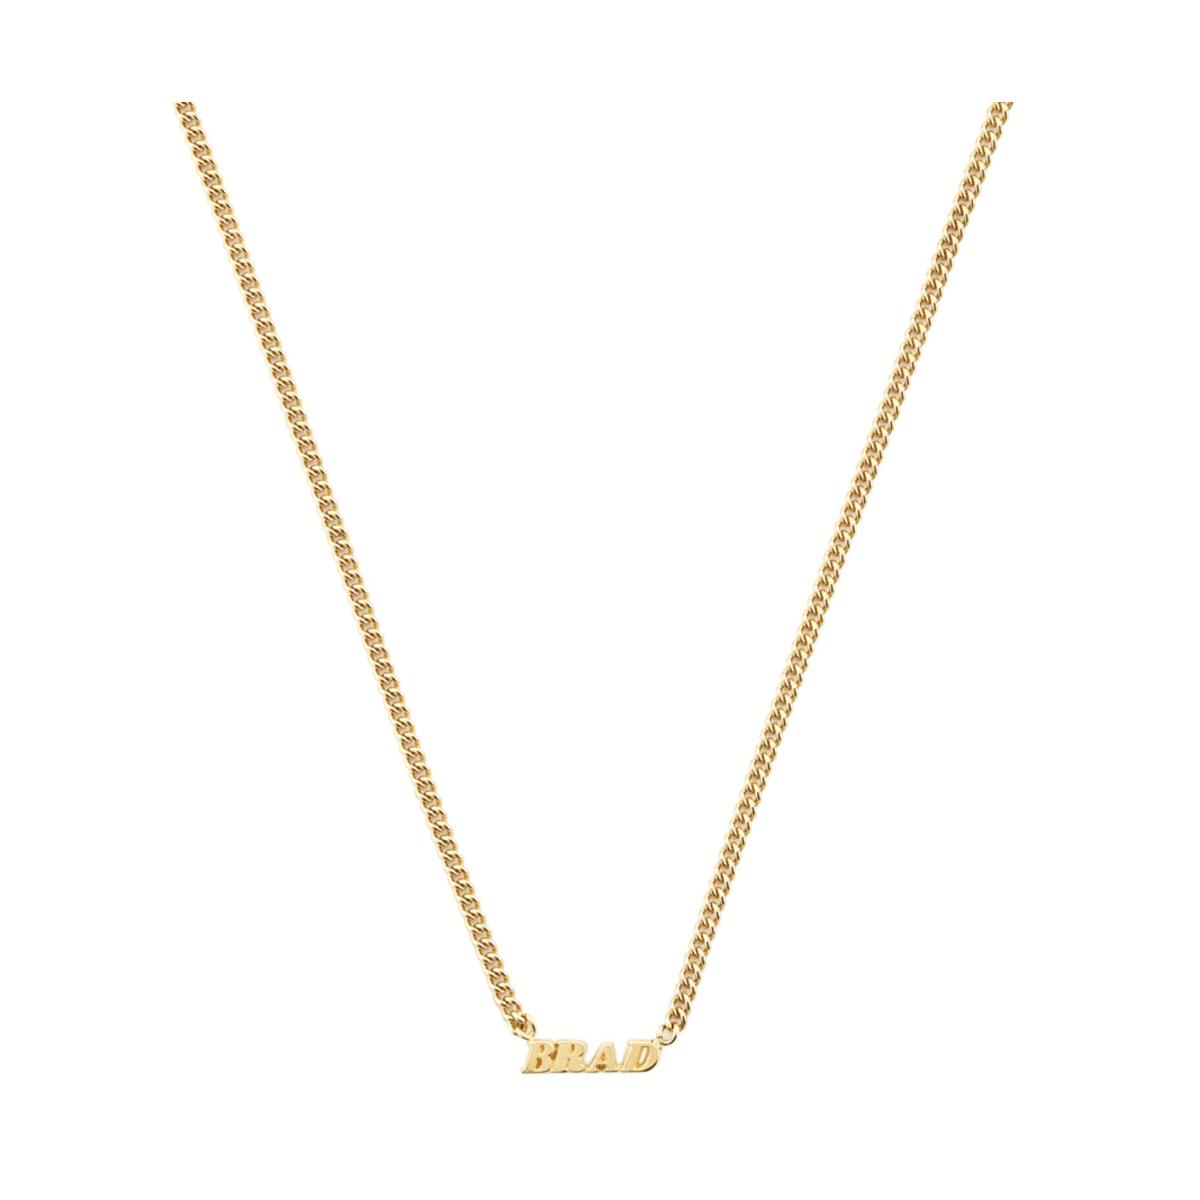 Ariel Gordon Carmella 14K Yellow-Gold Name It Necklace